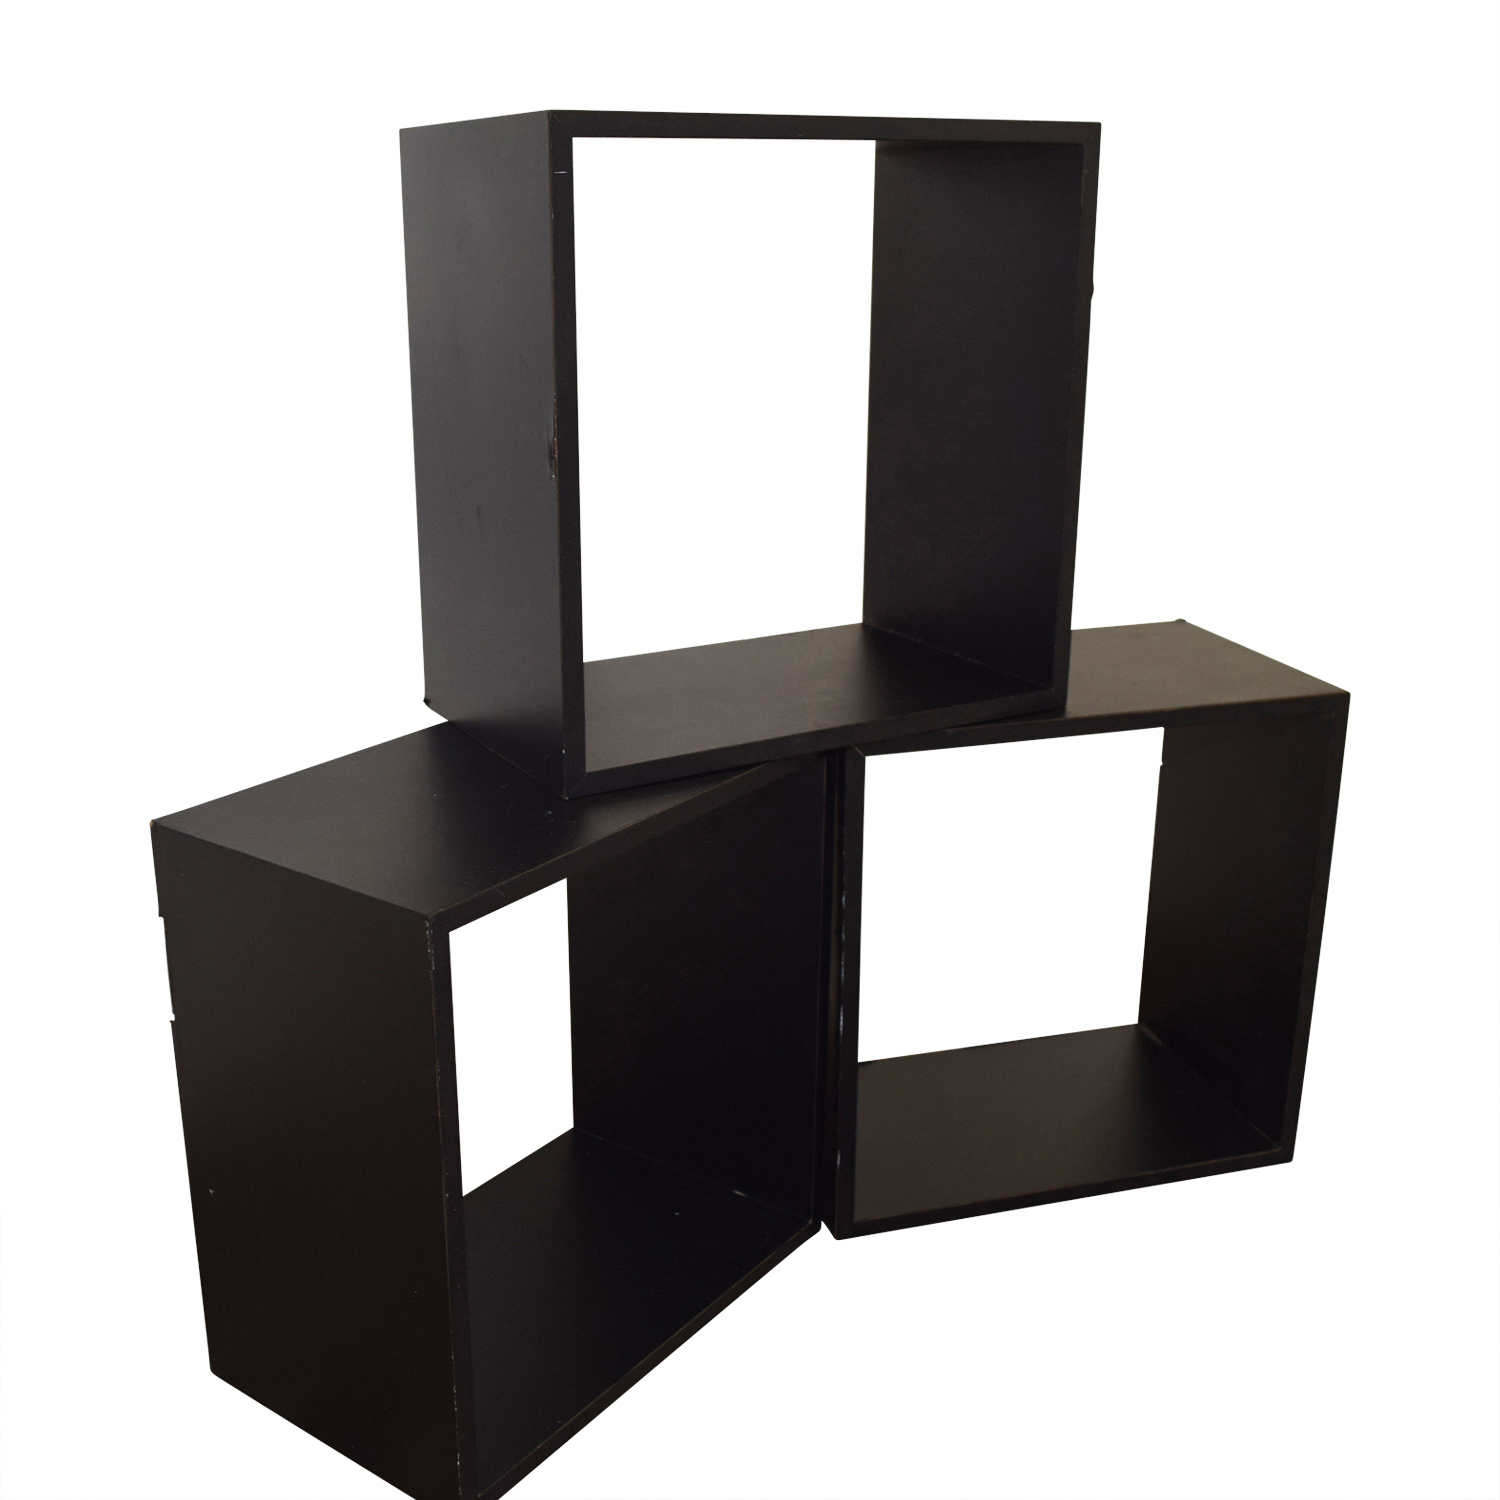 Black Decorative Wall Box Shelves sale